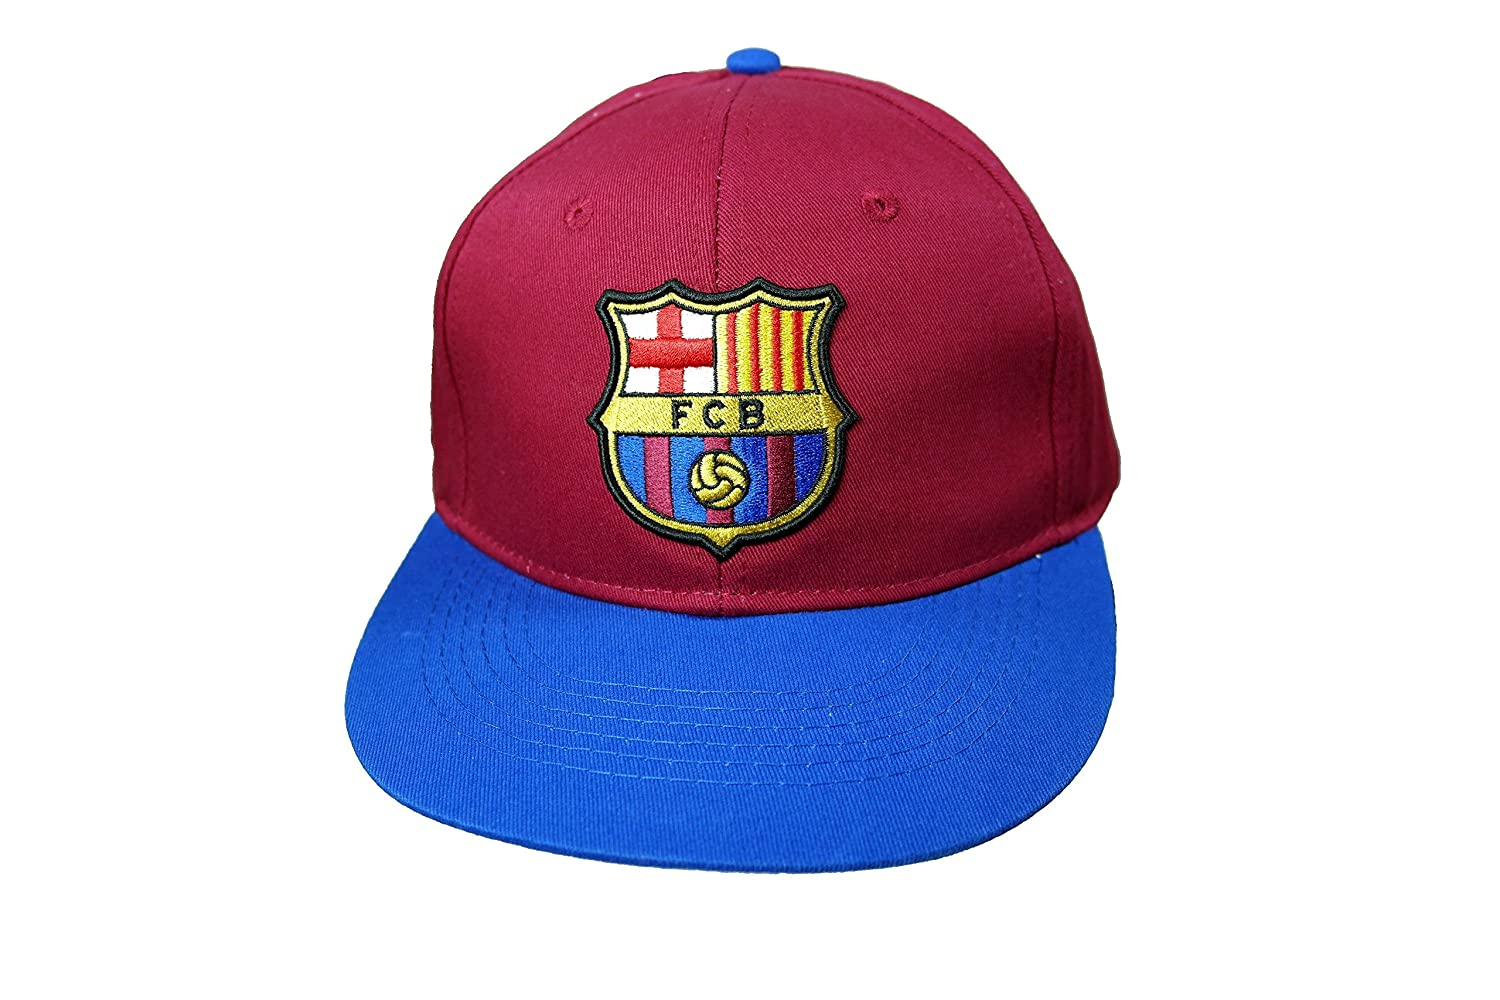 FC Barcelona Authentic Official Licensed Product Soccerキャップ – 05 – 5 B07BGRL5G4